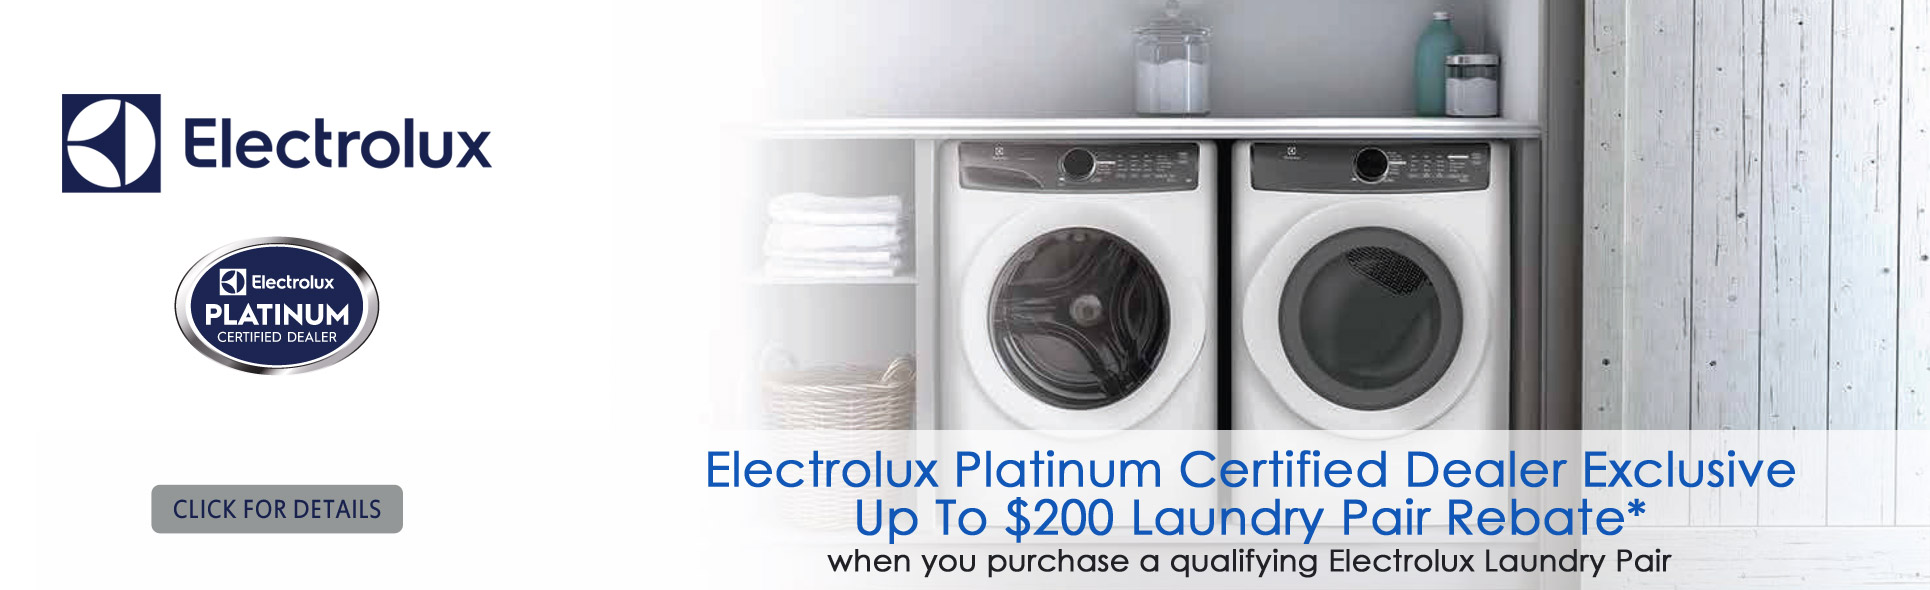 Save up to $200 with qualified Electrolux laundry pair rebate